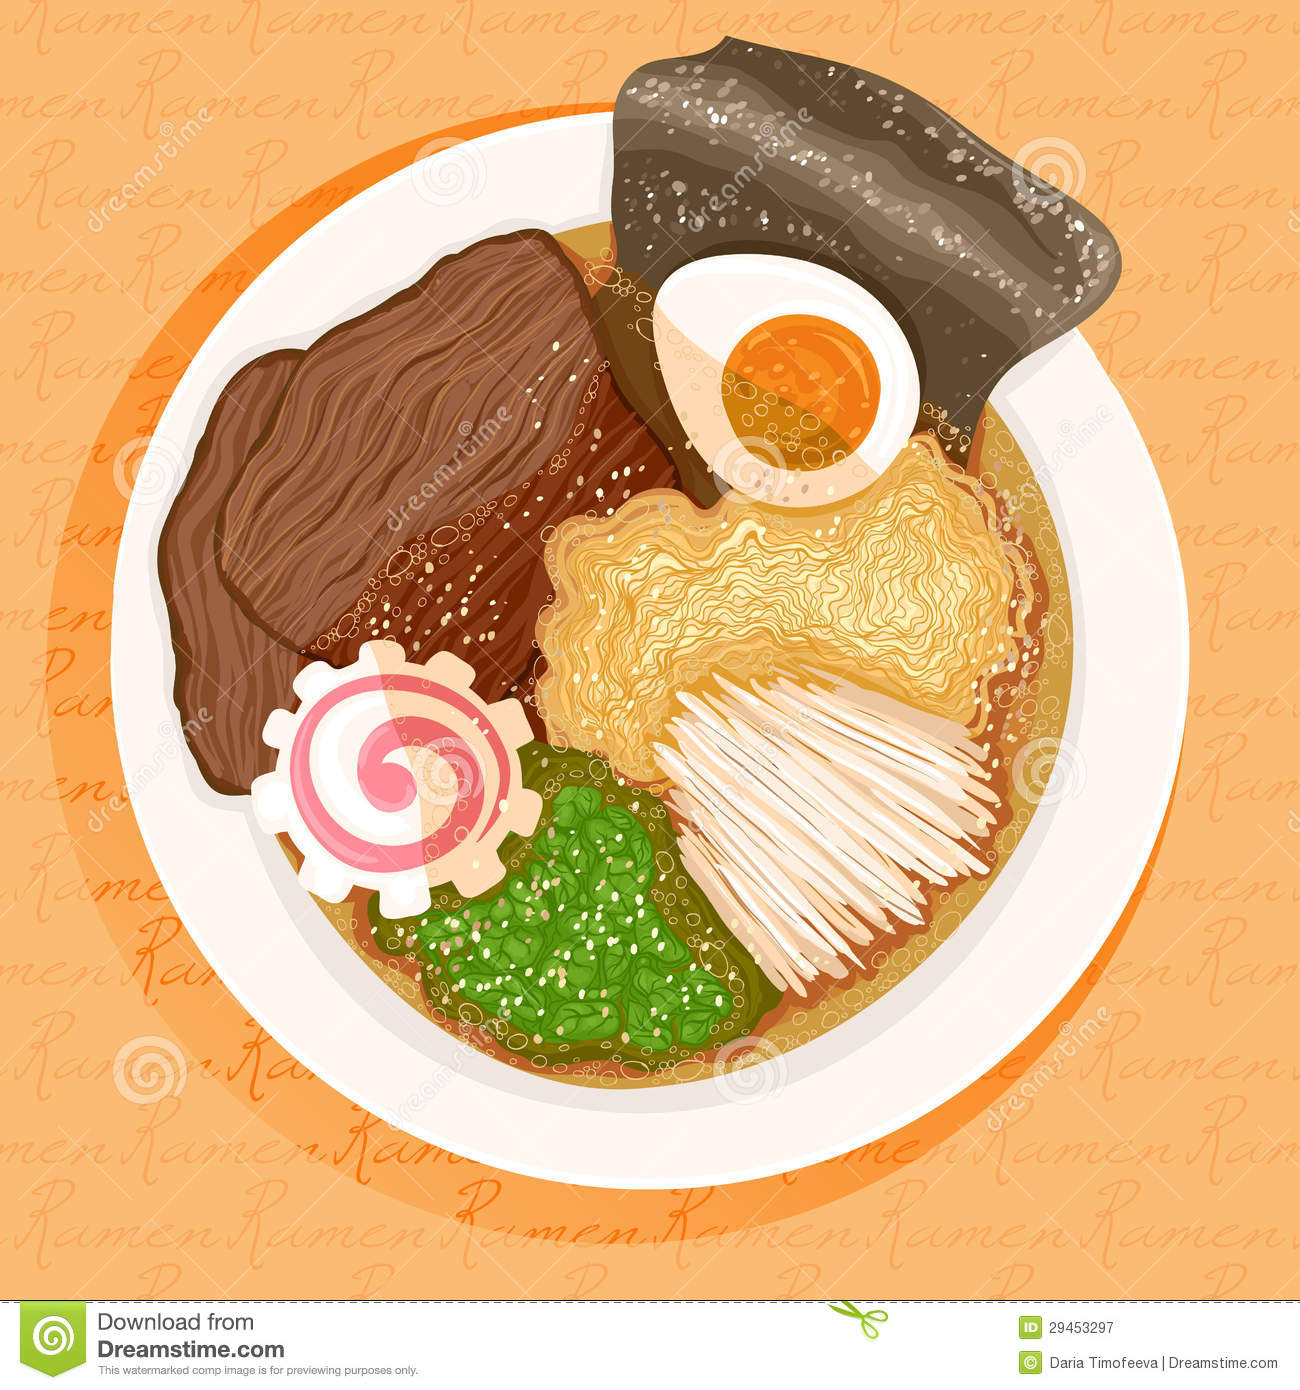 ramen cooking time beef with on background. orange prepared ramen Dish an with